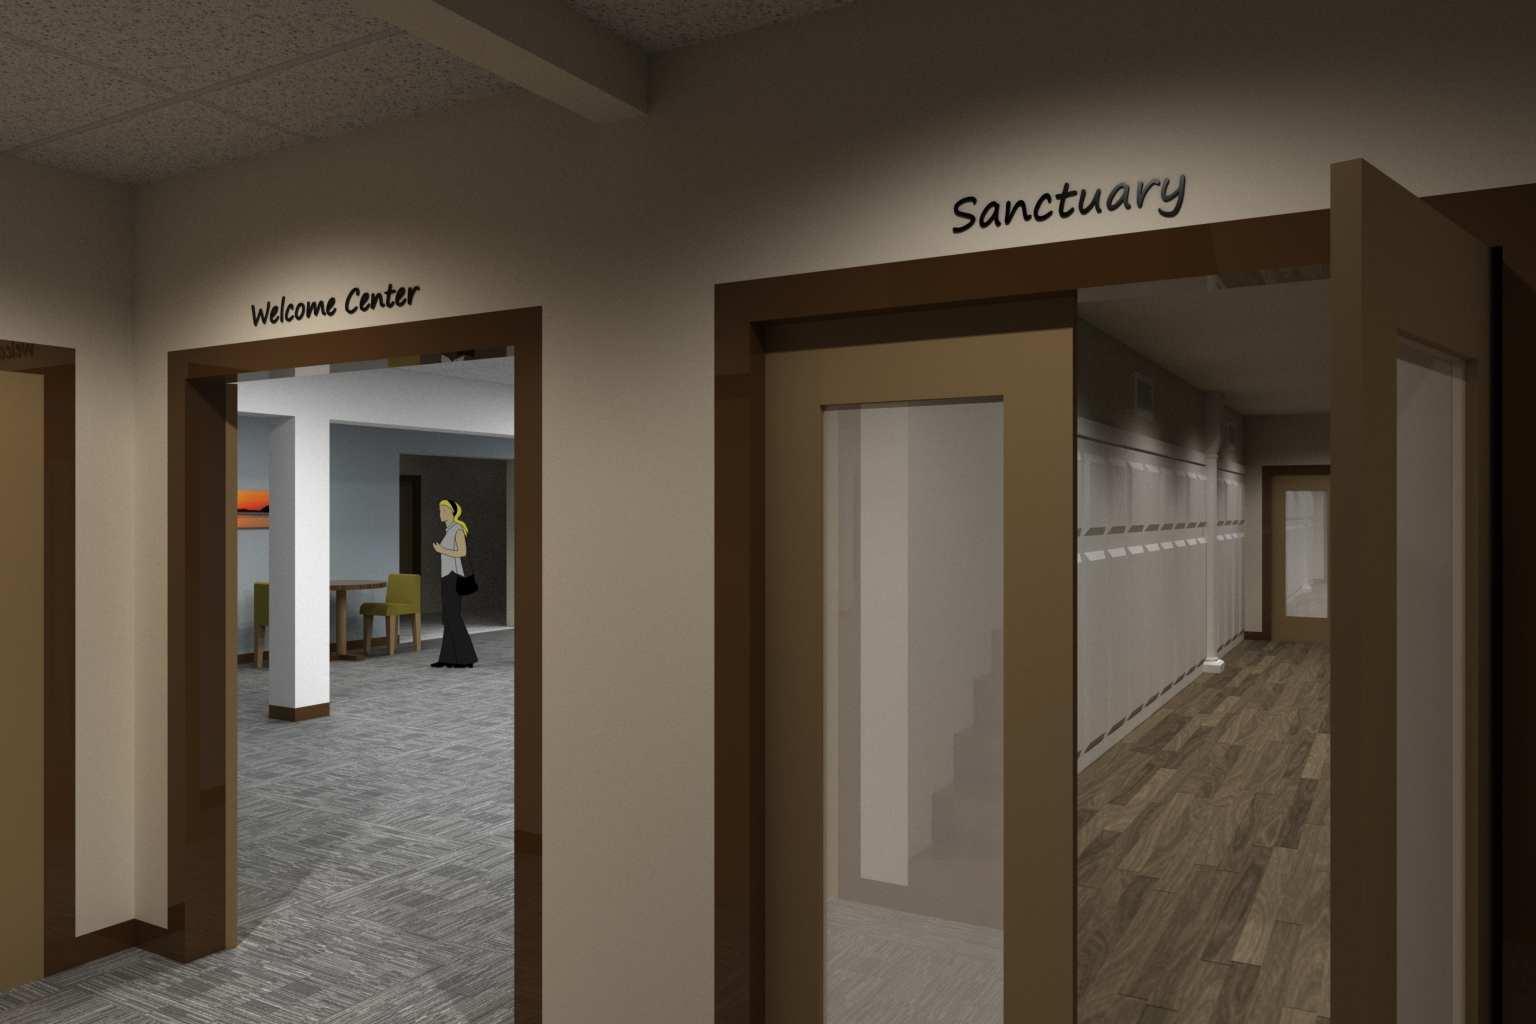 Entry way to the new Welcome Center and Sanctuary at the top of the stairs